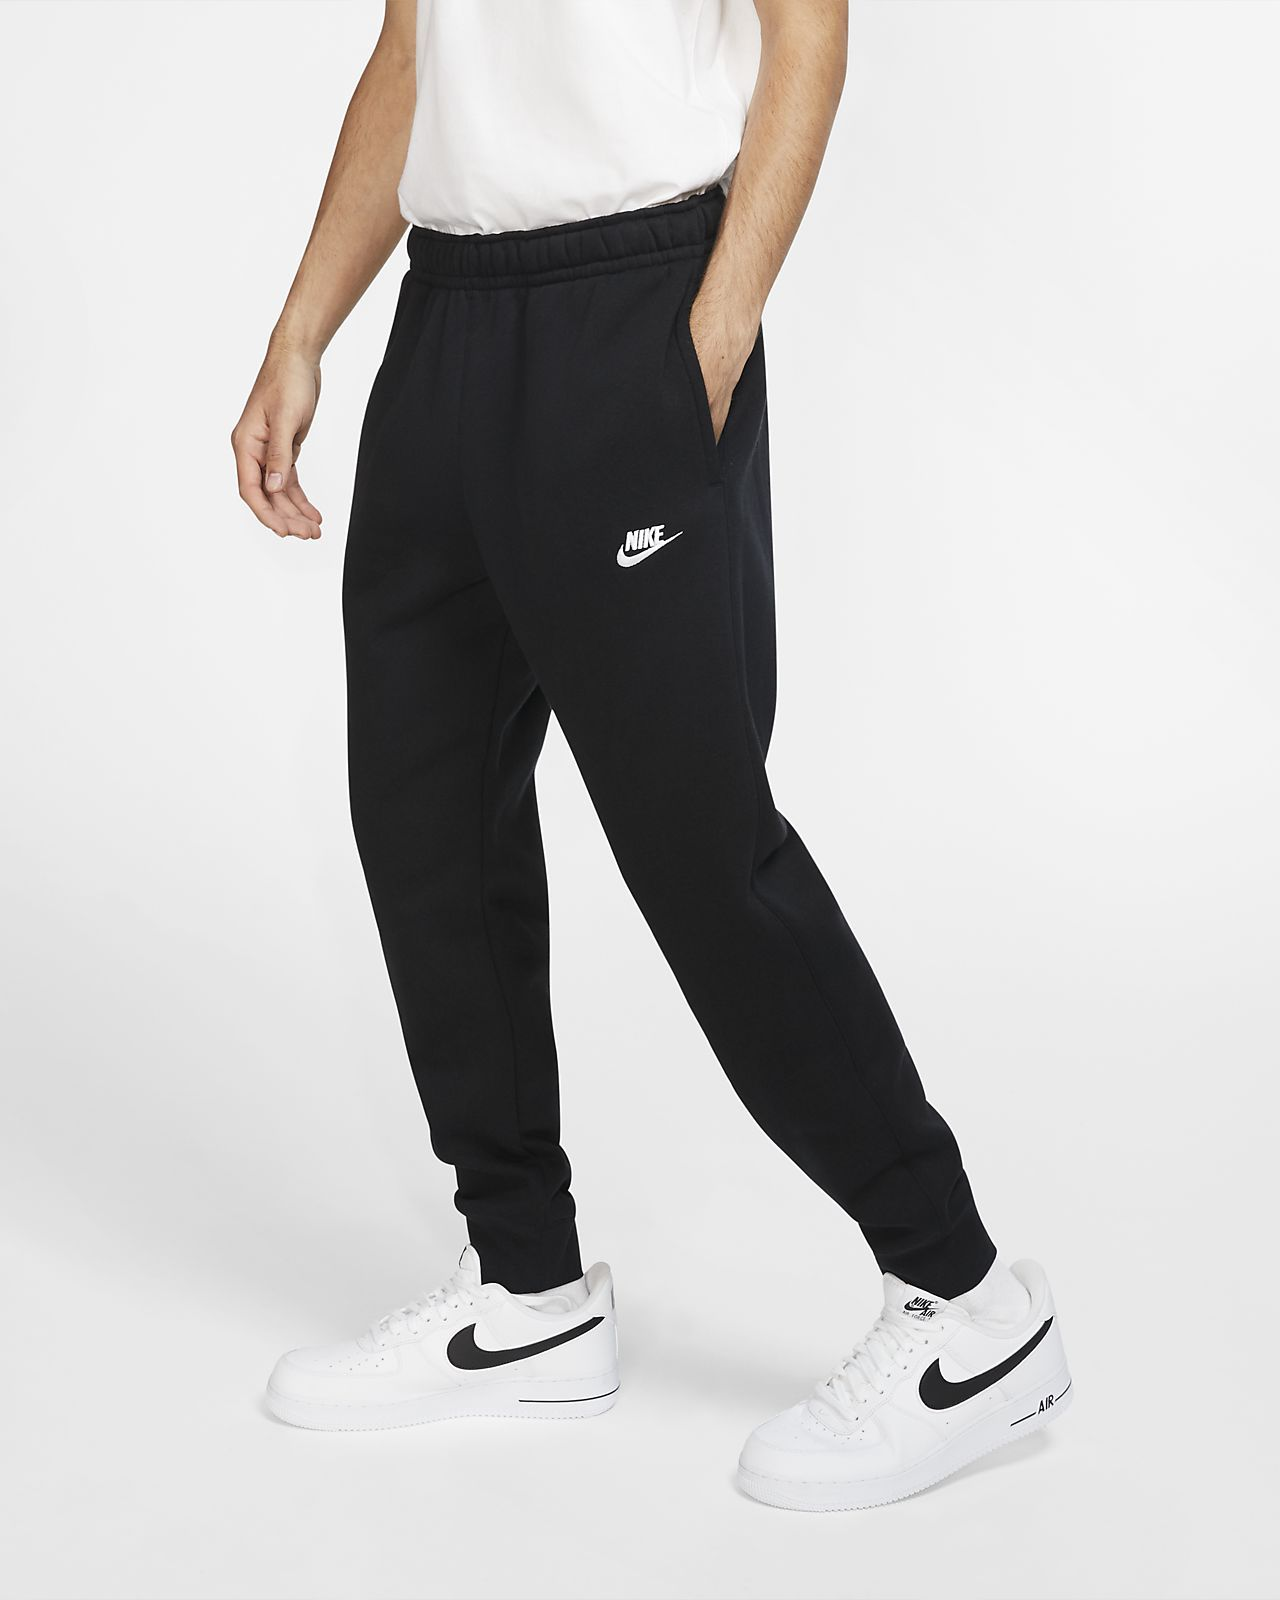 adidas fleece mens joggers